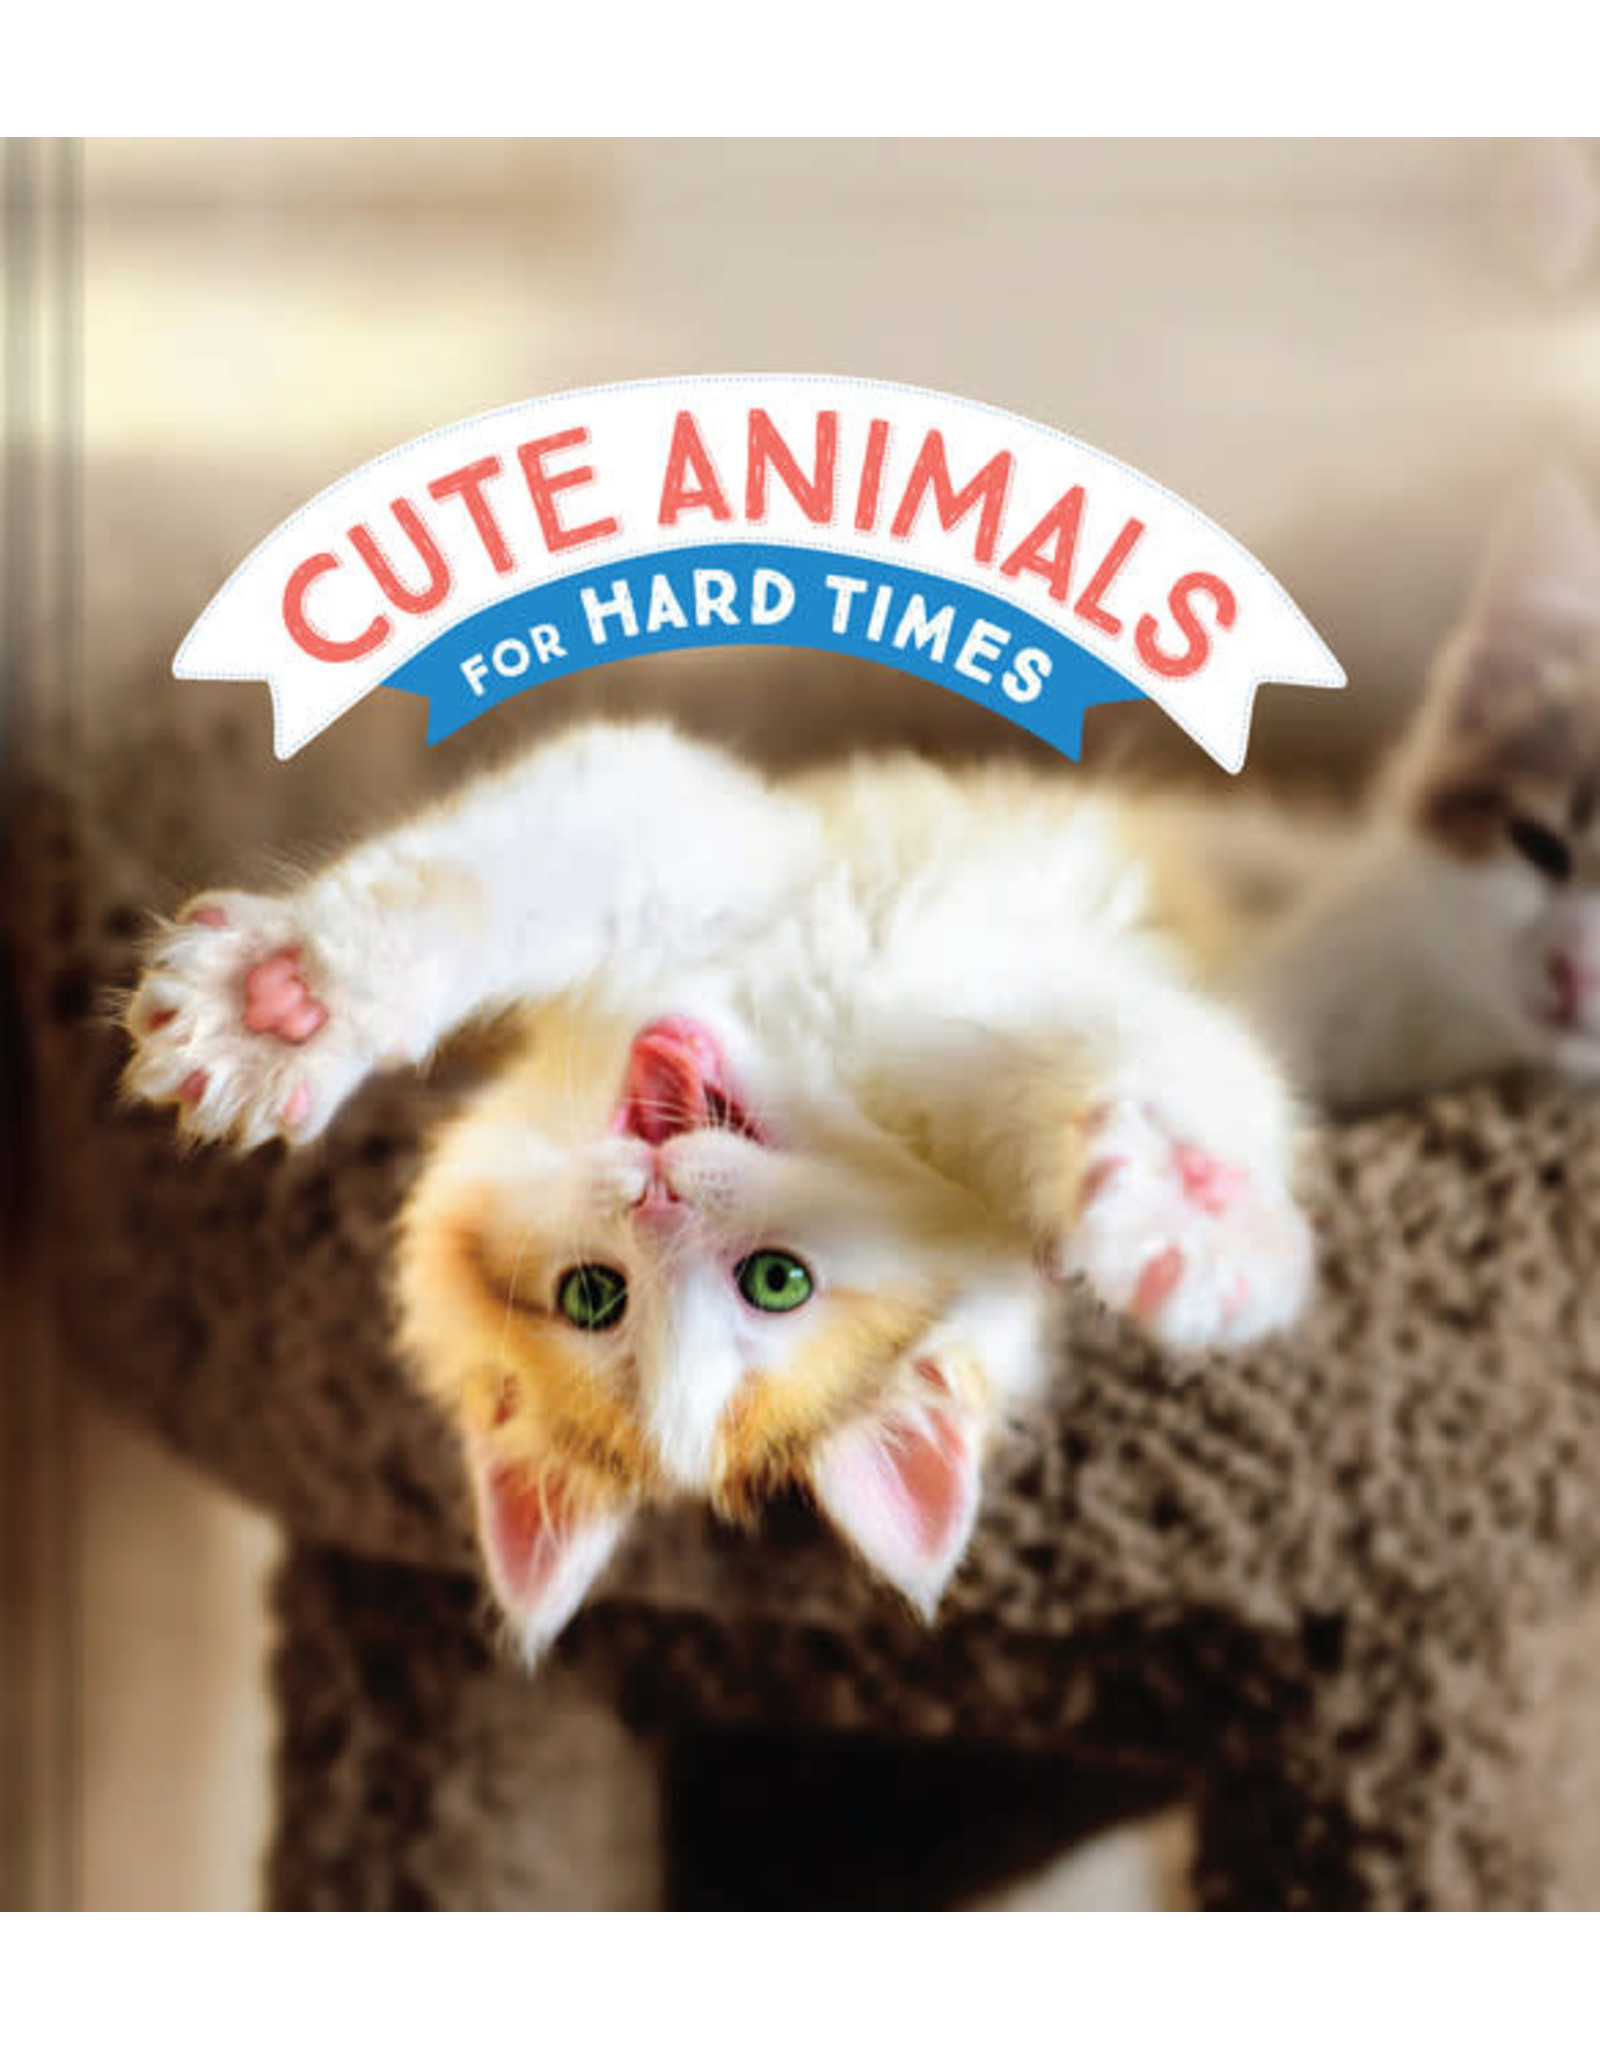 RST - Cute Animals for Hard Times